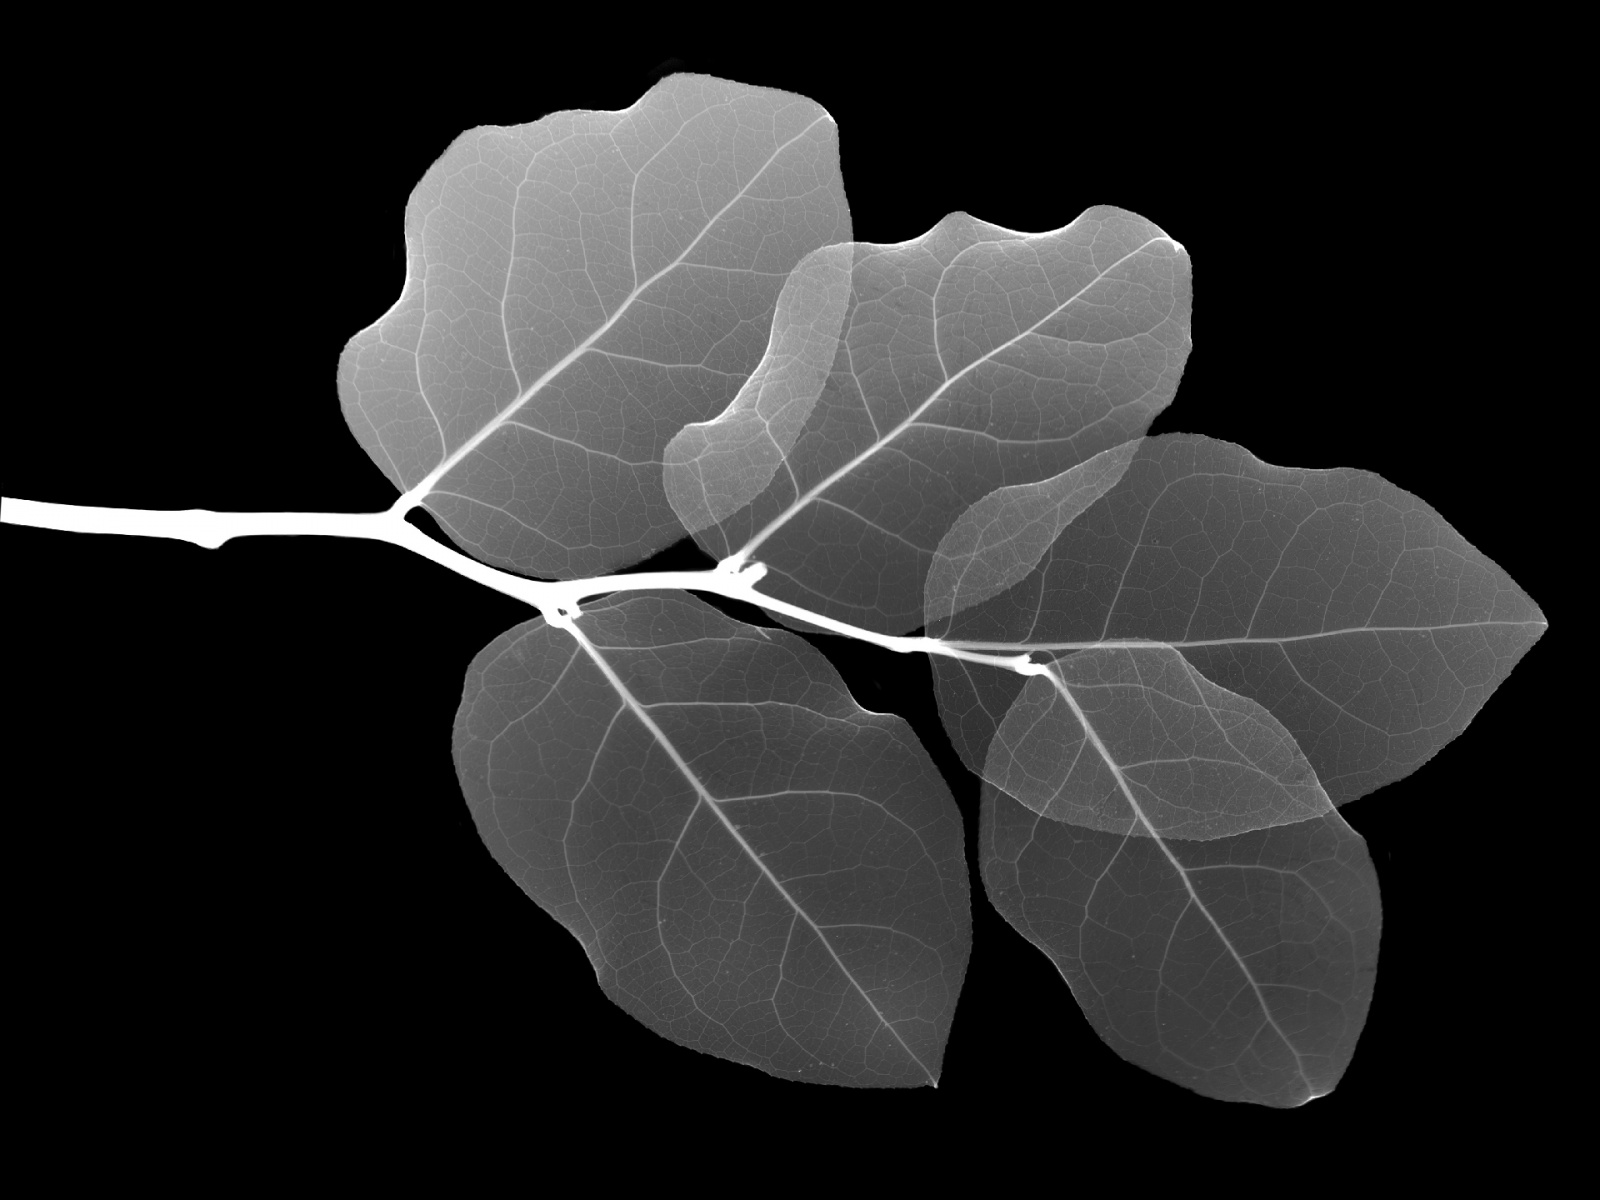 Leaf X ray wallpapers and images   wallpapers pictures photos 1600x1200